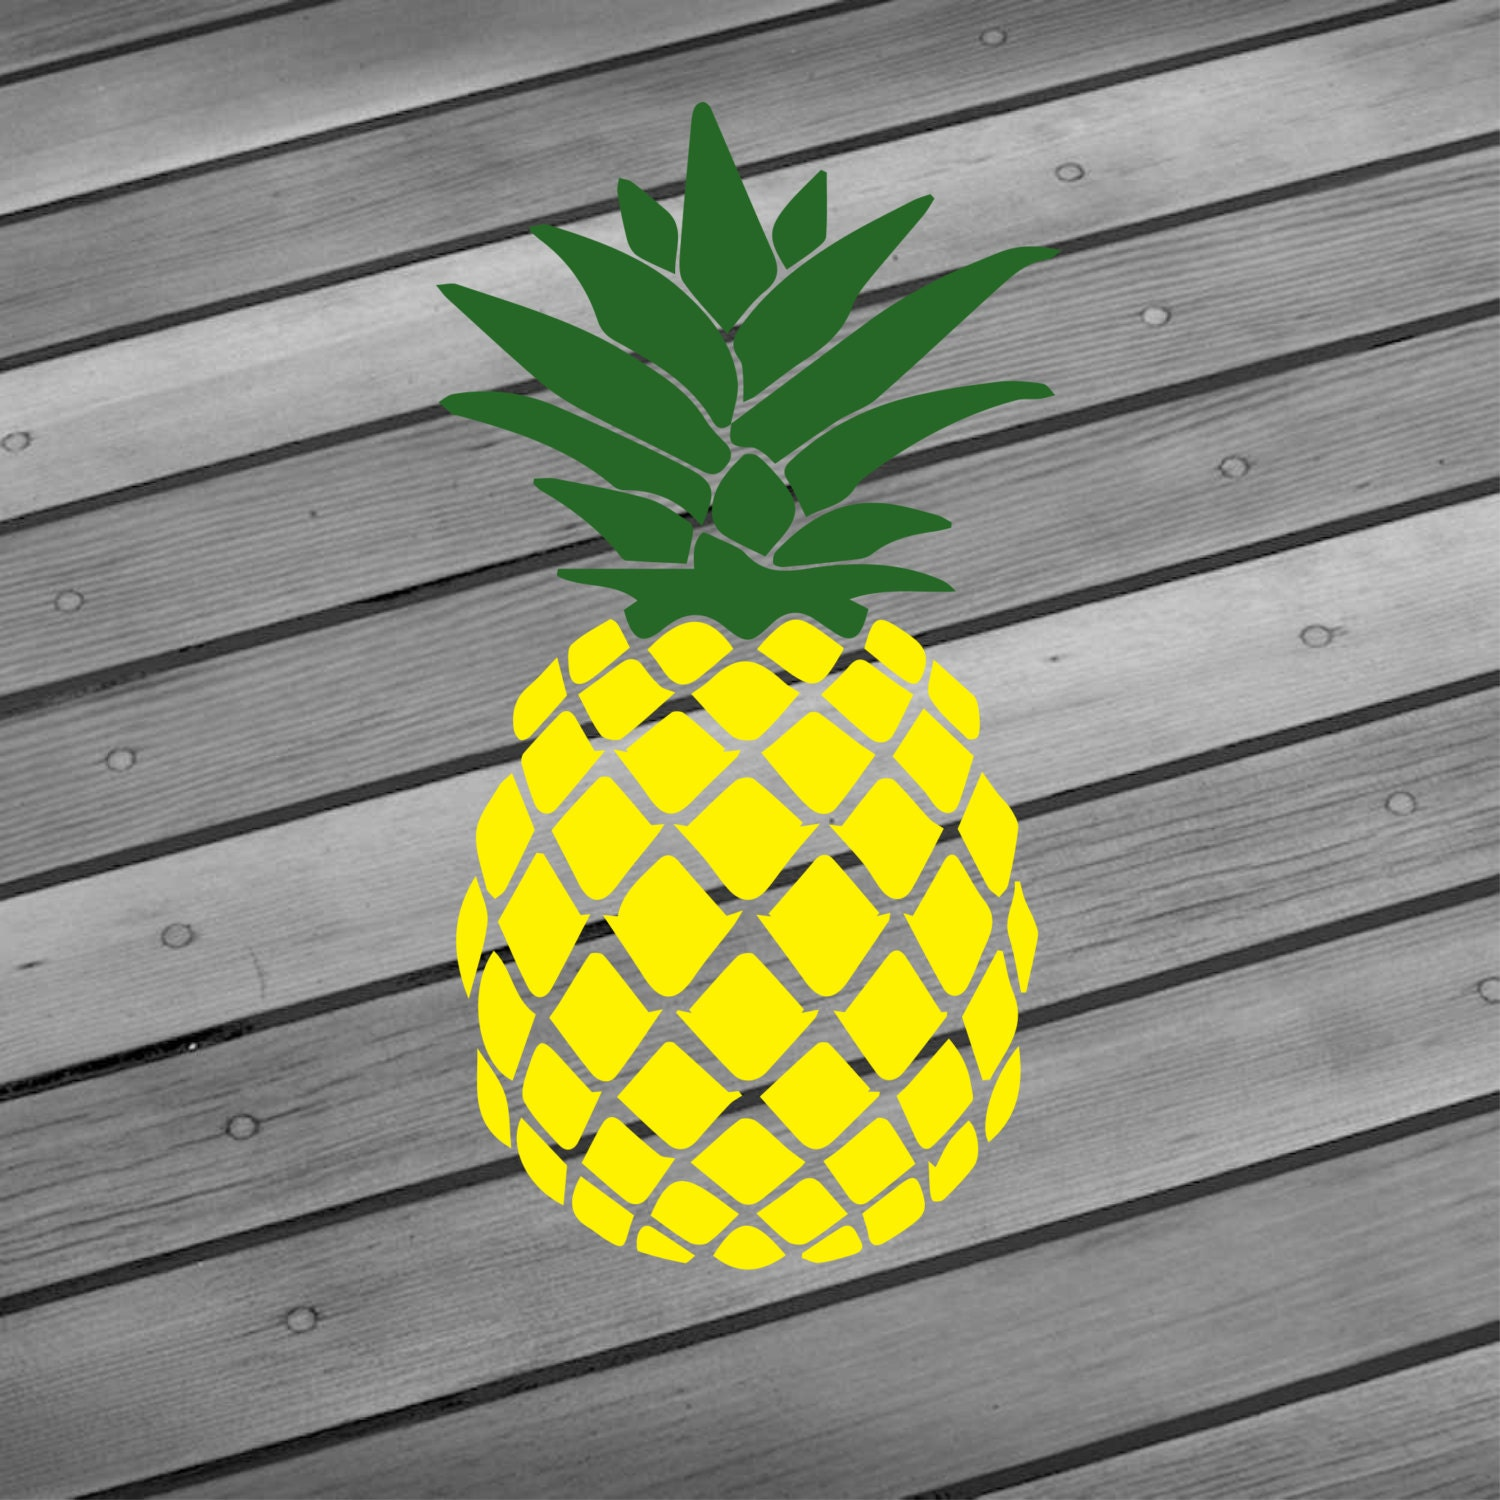 Case Design where can you design your own phone case : Pineapple decal Pineapple Sticker Pineapple car by MarylandCorvus